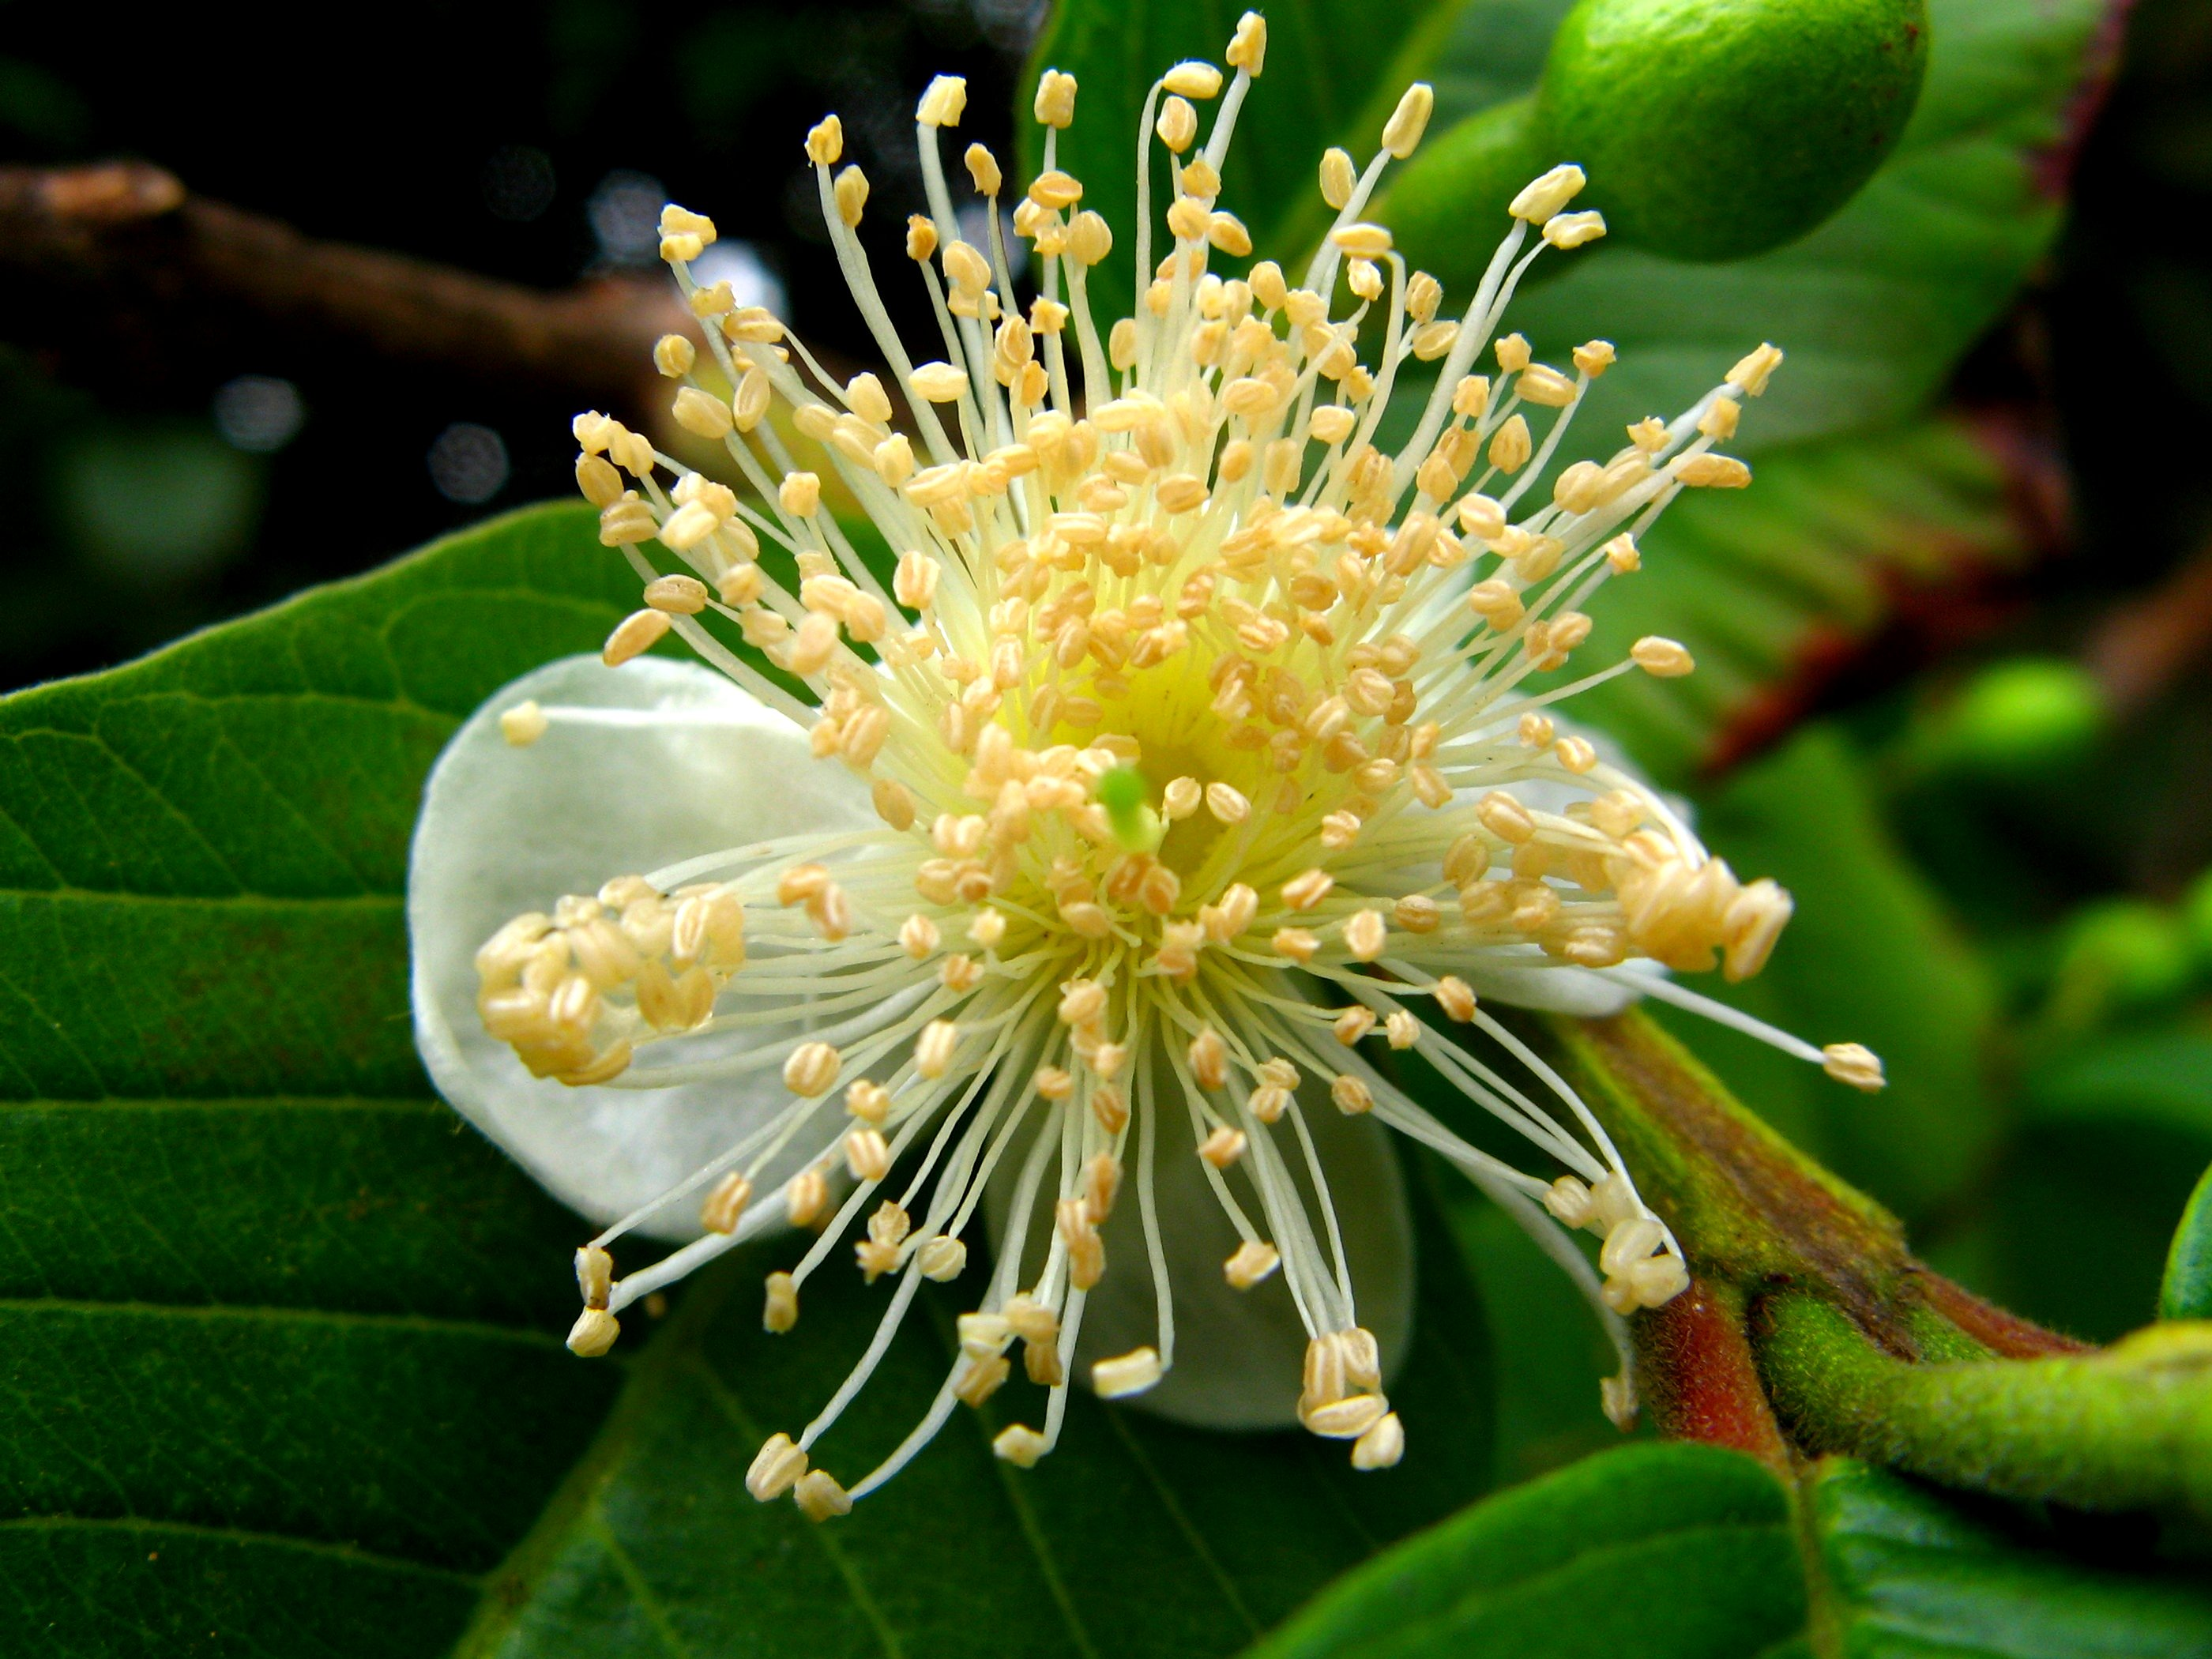 A guava flower